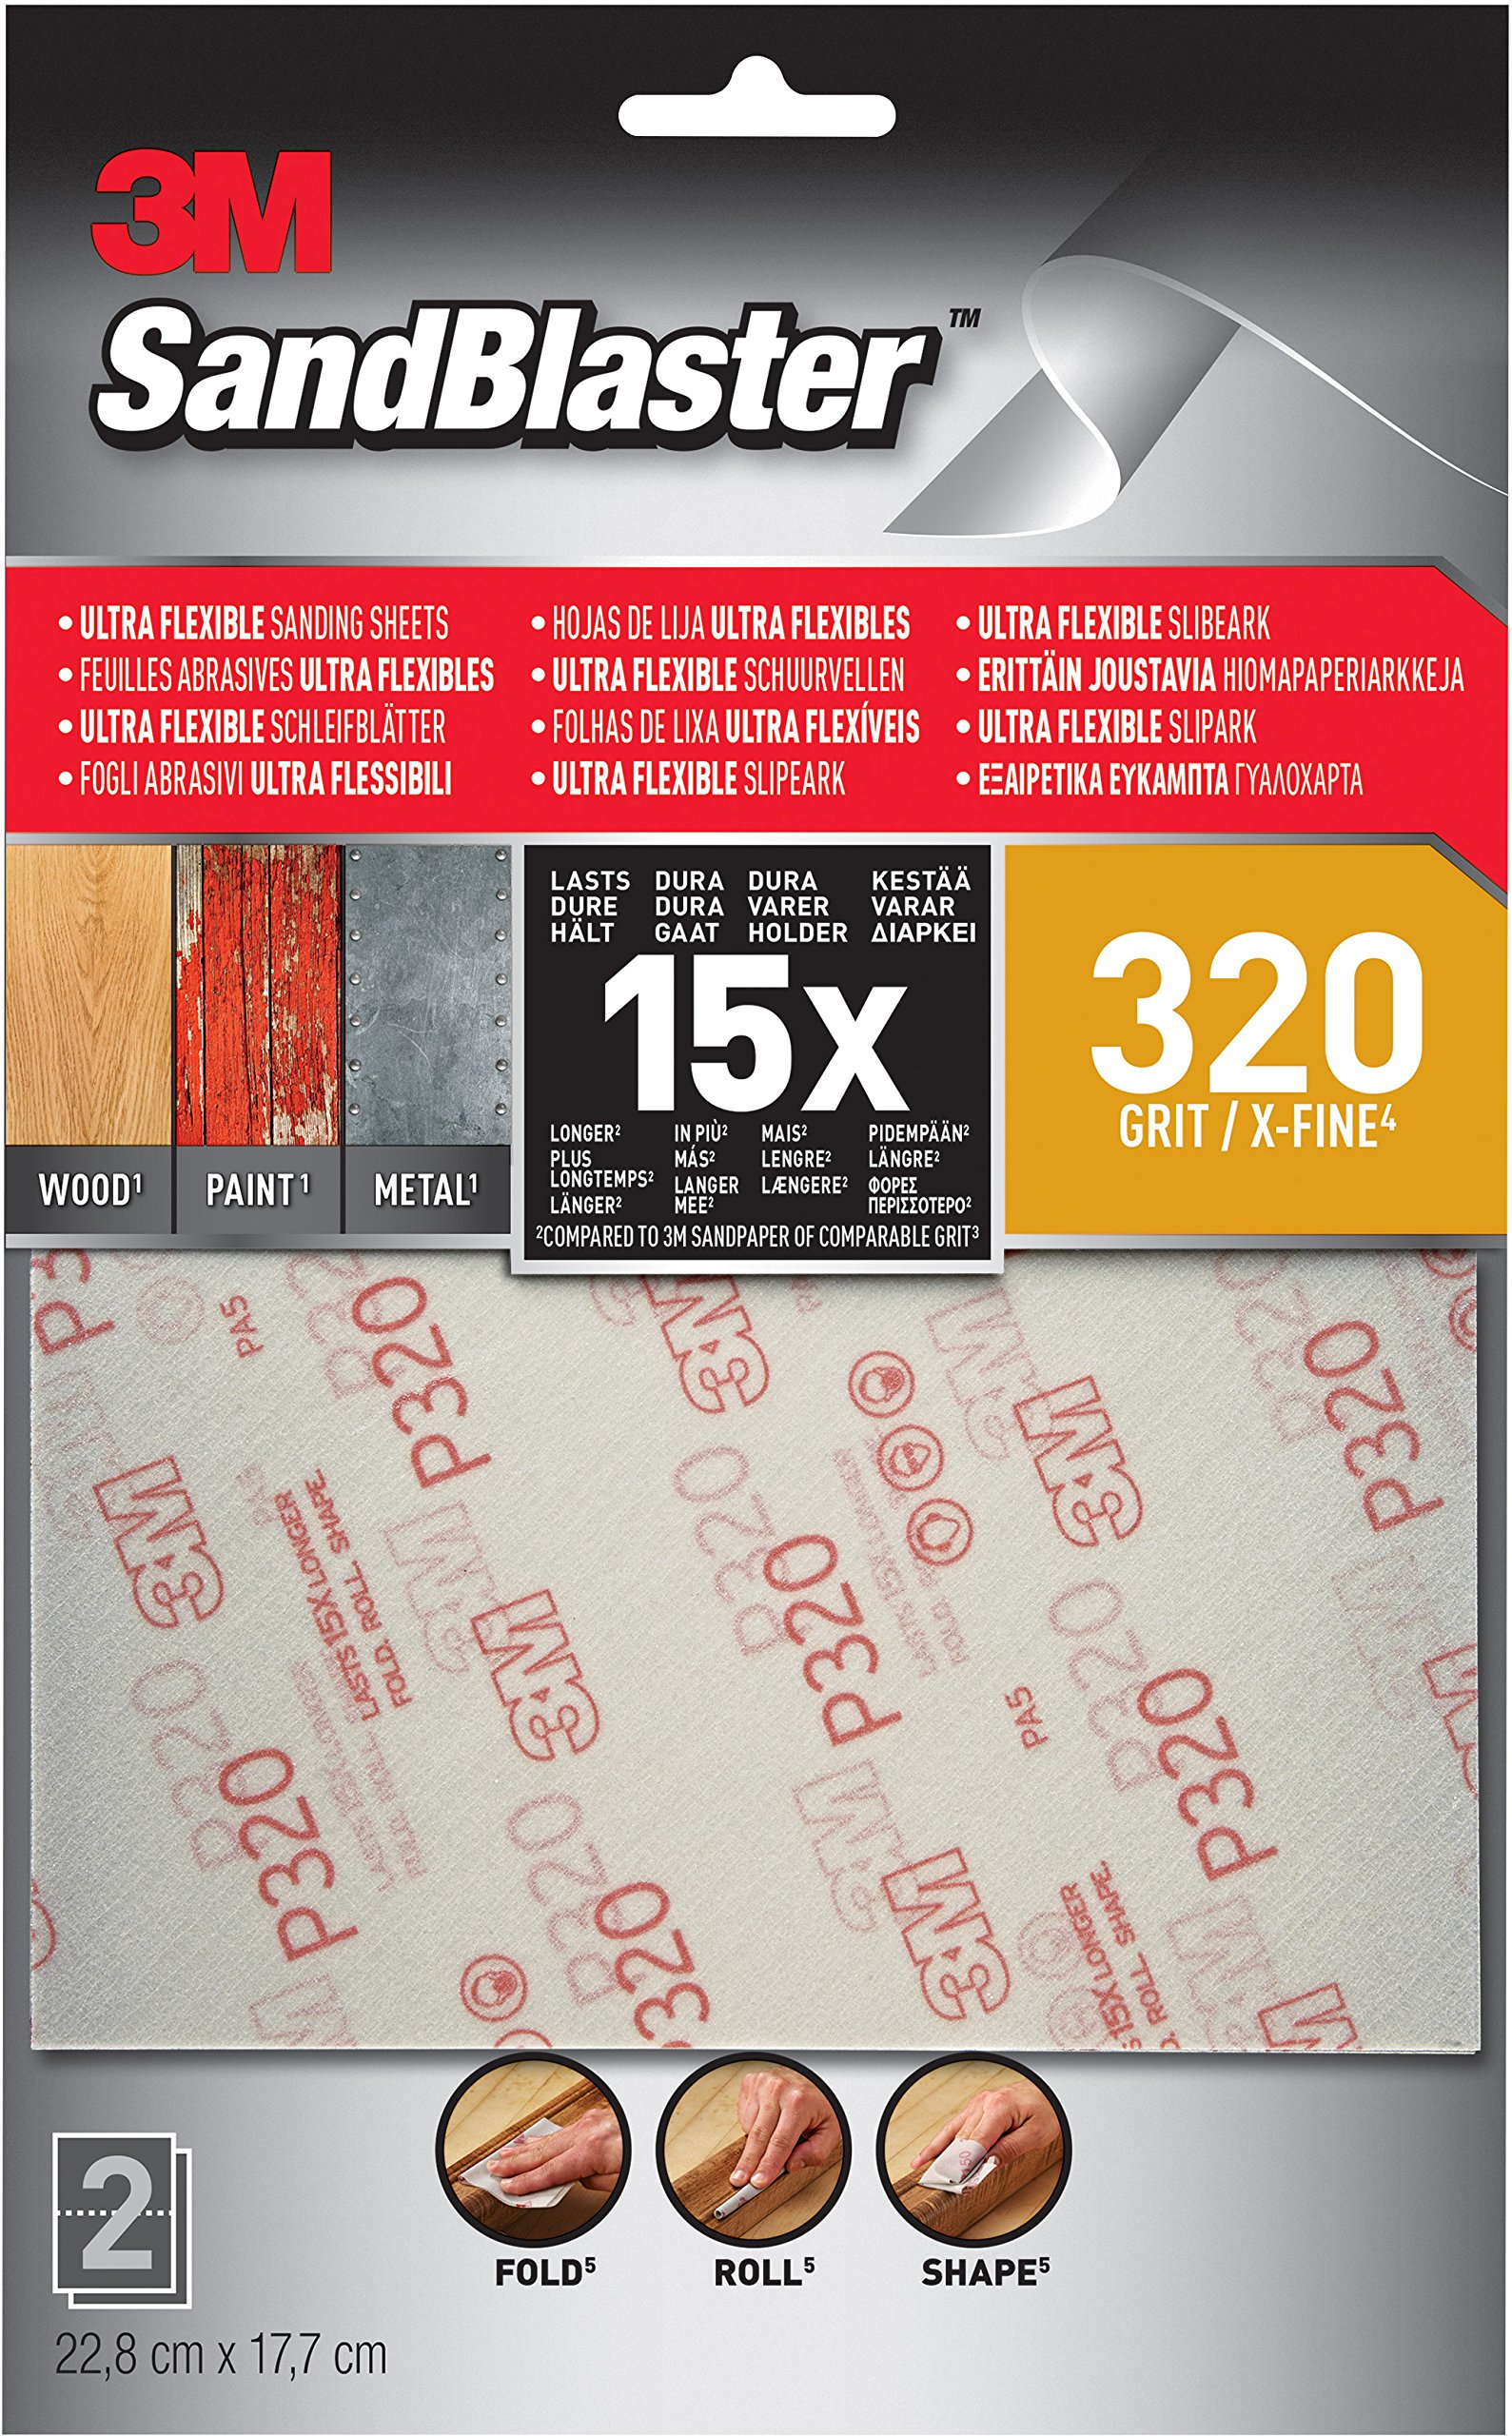 25MM X 50MT ABRASIVE CLOTH FLEXI BACKED ROLL 320 GRIT